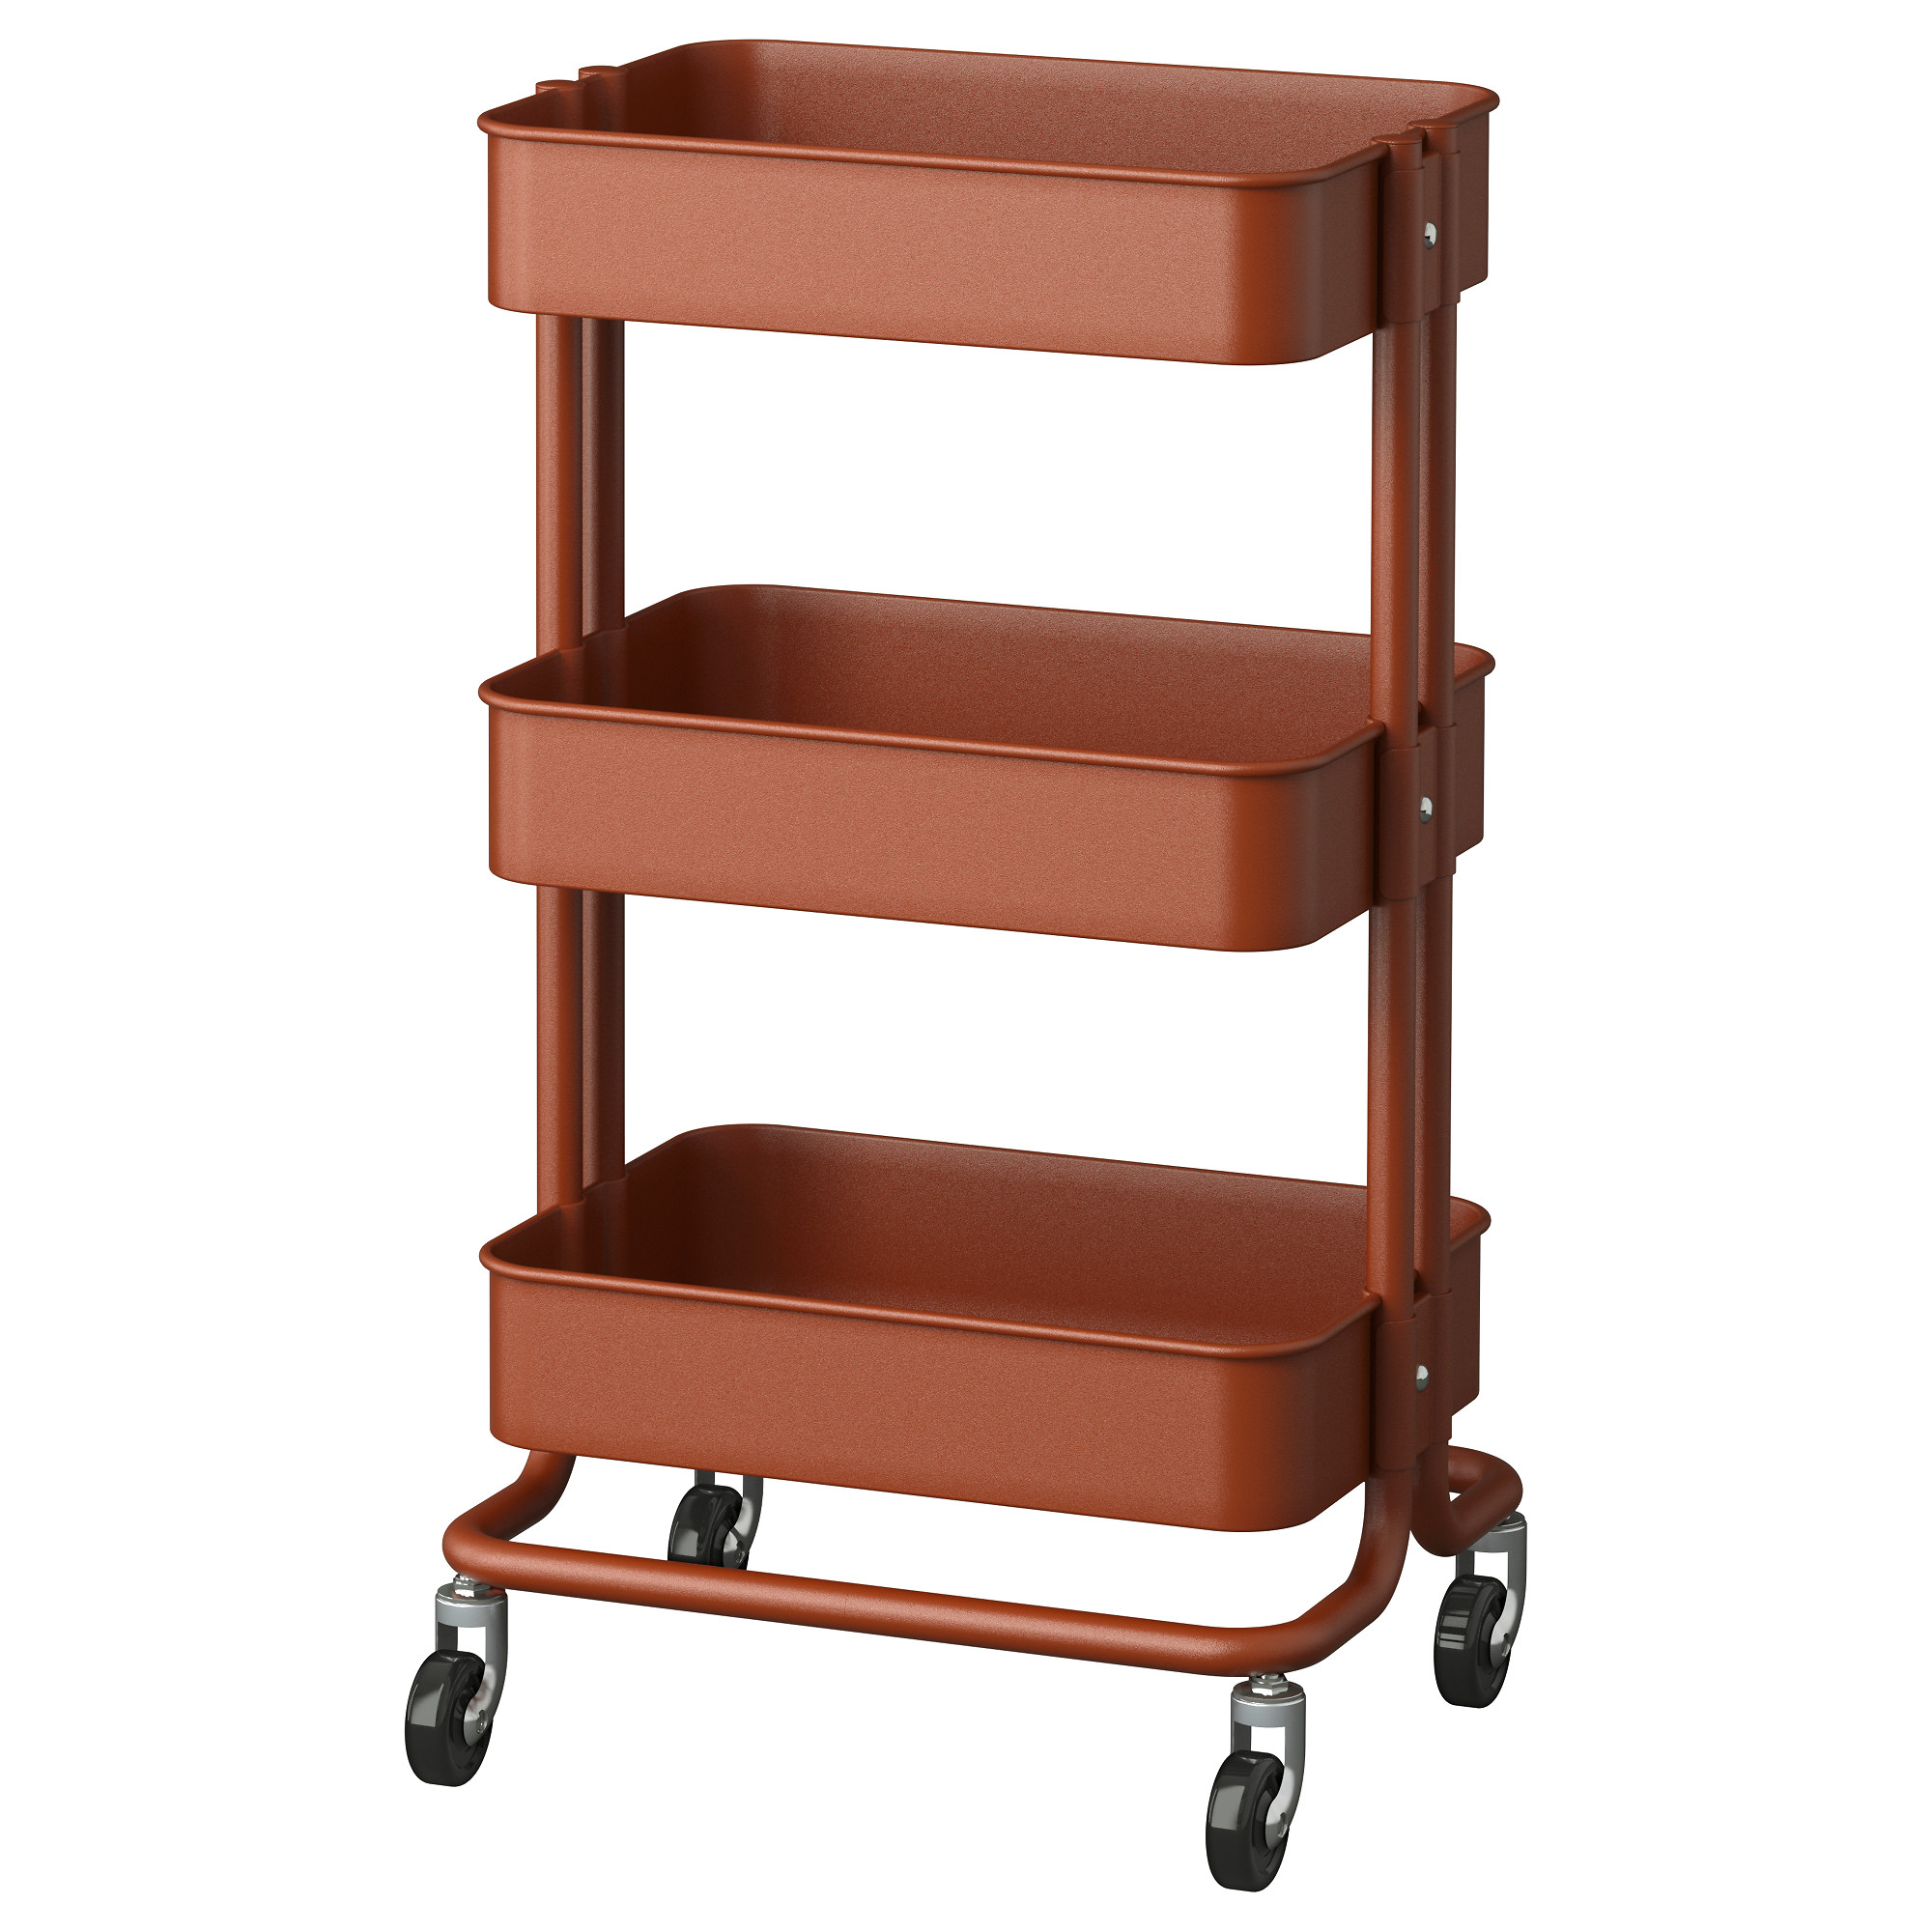 rskog utility cart redbrown length 13 34 width. Interior Design Ideas. Home Design Ideas